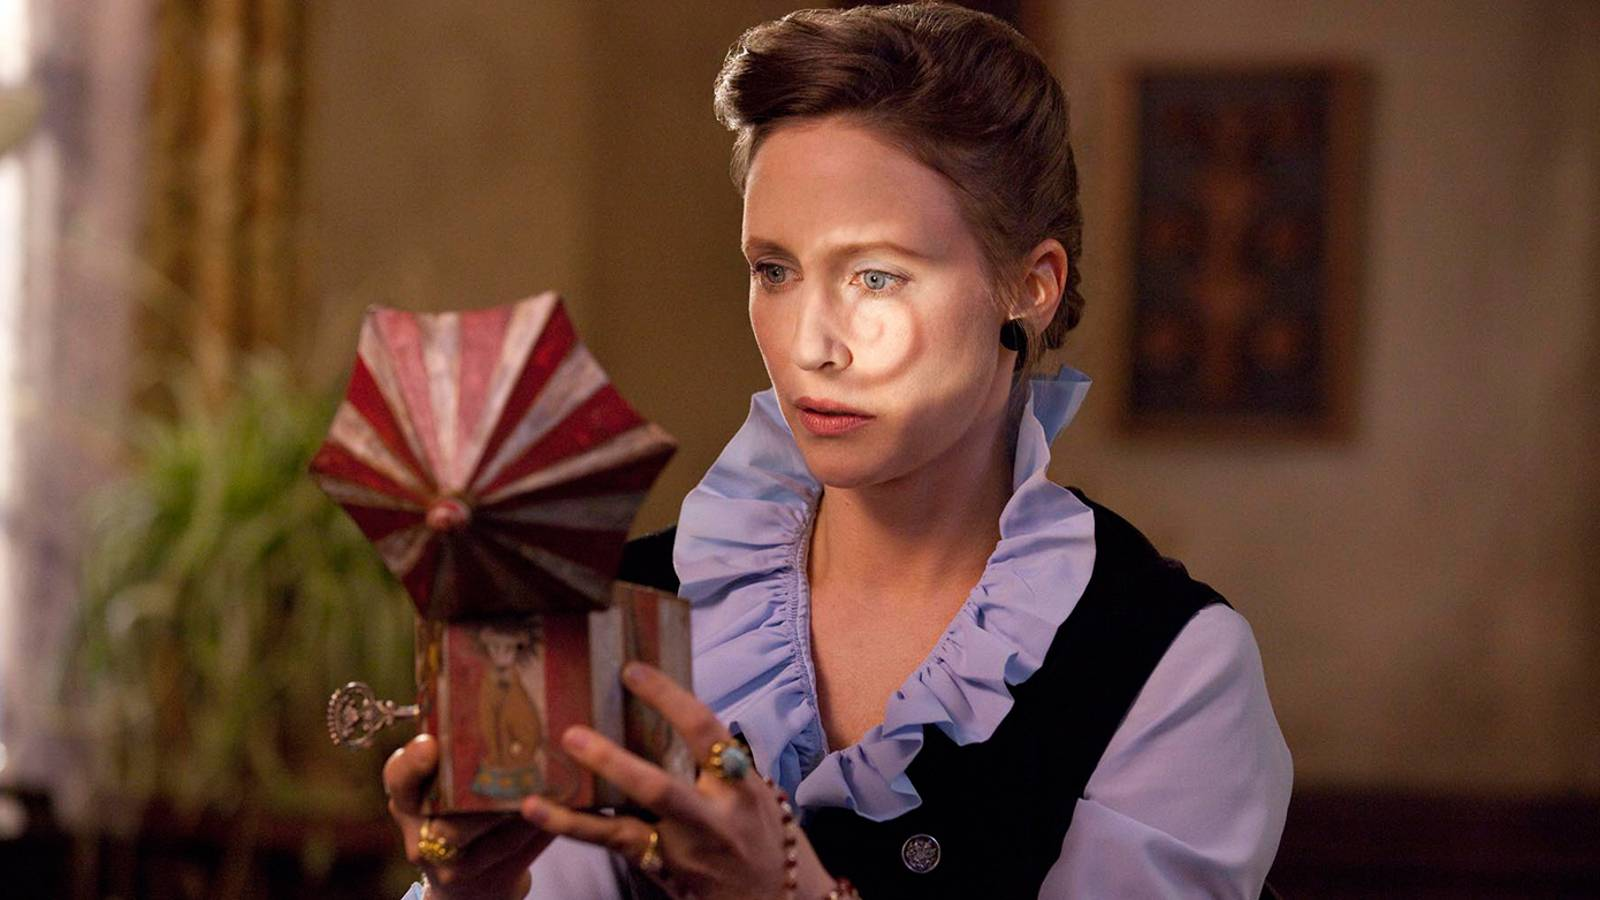 The Conjuring wallpaper 2